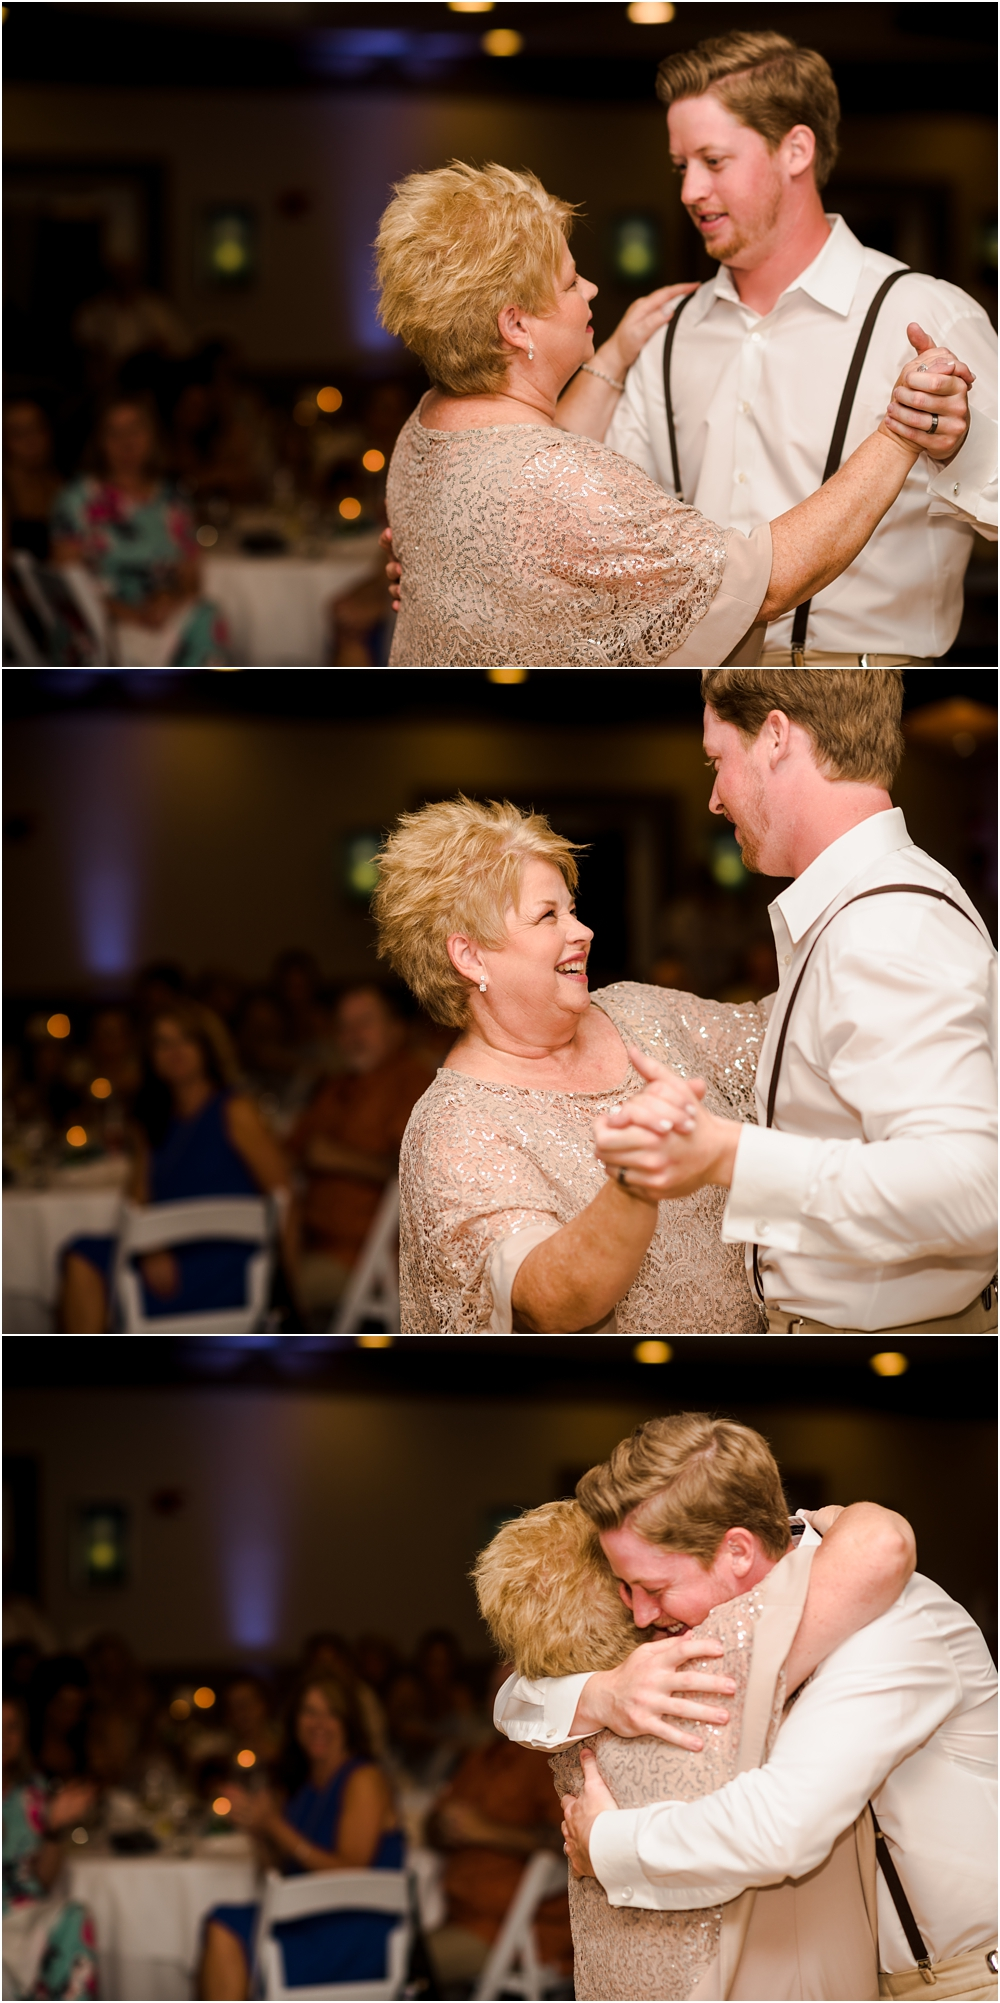 dillard-florida-wedding-photographer-panama-city-beach-dothan-tallahassee-kiersten-grant-photography-168.jpg